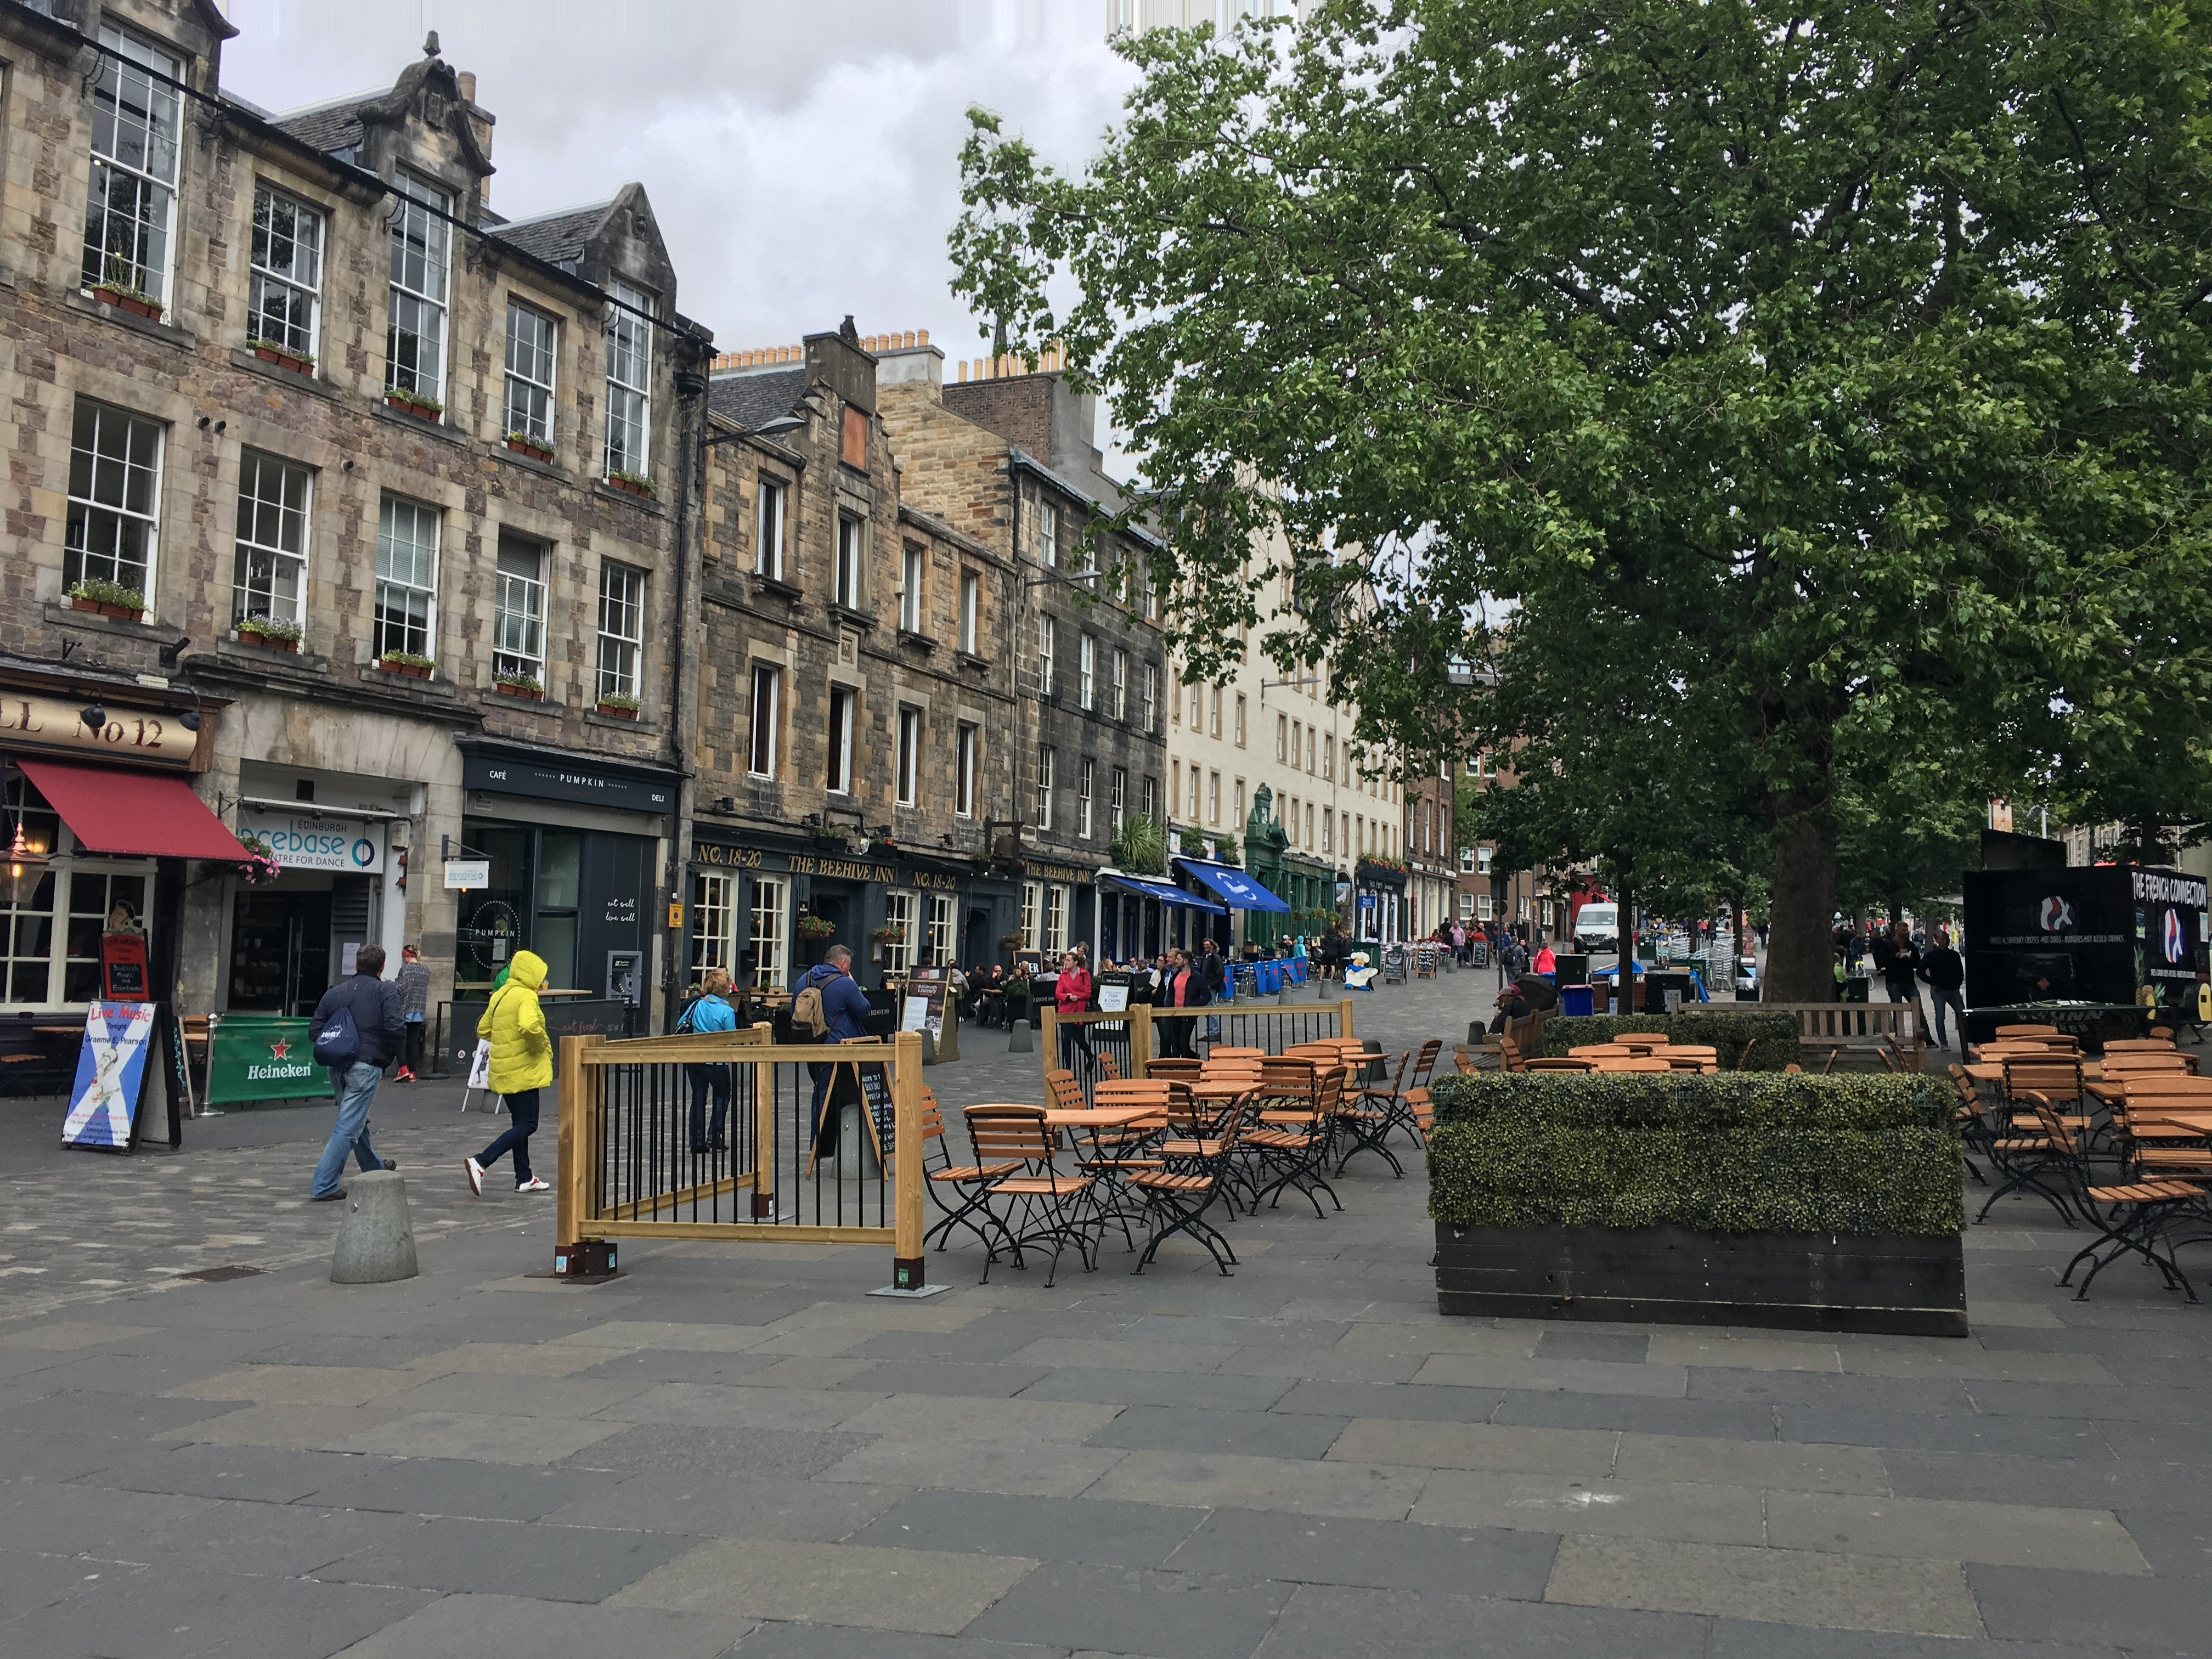 Some shops and restaurants in Edinburgh